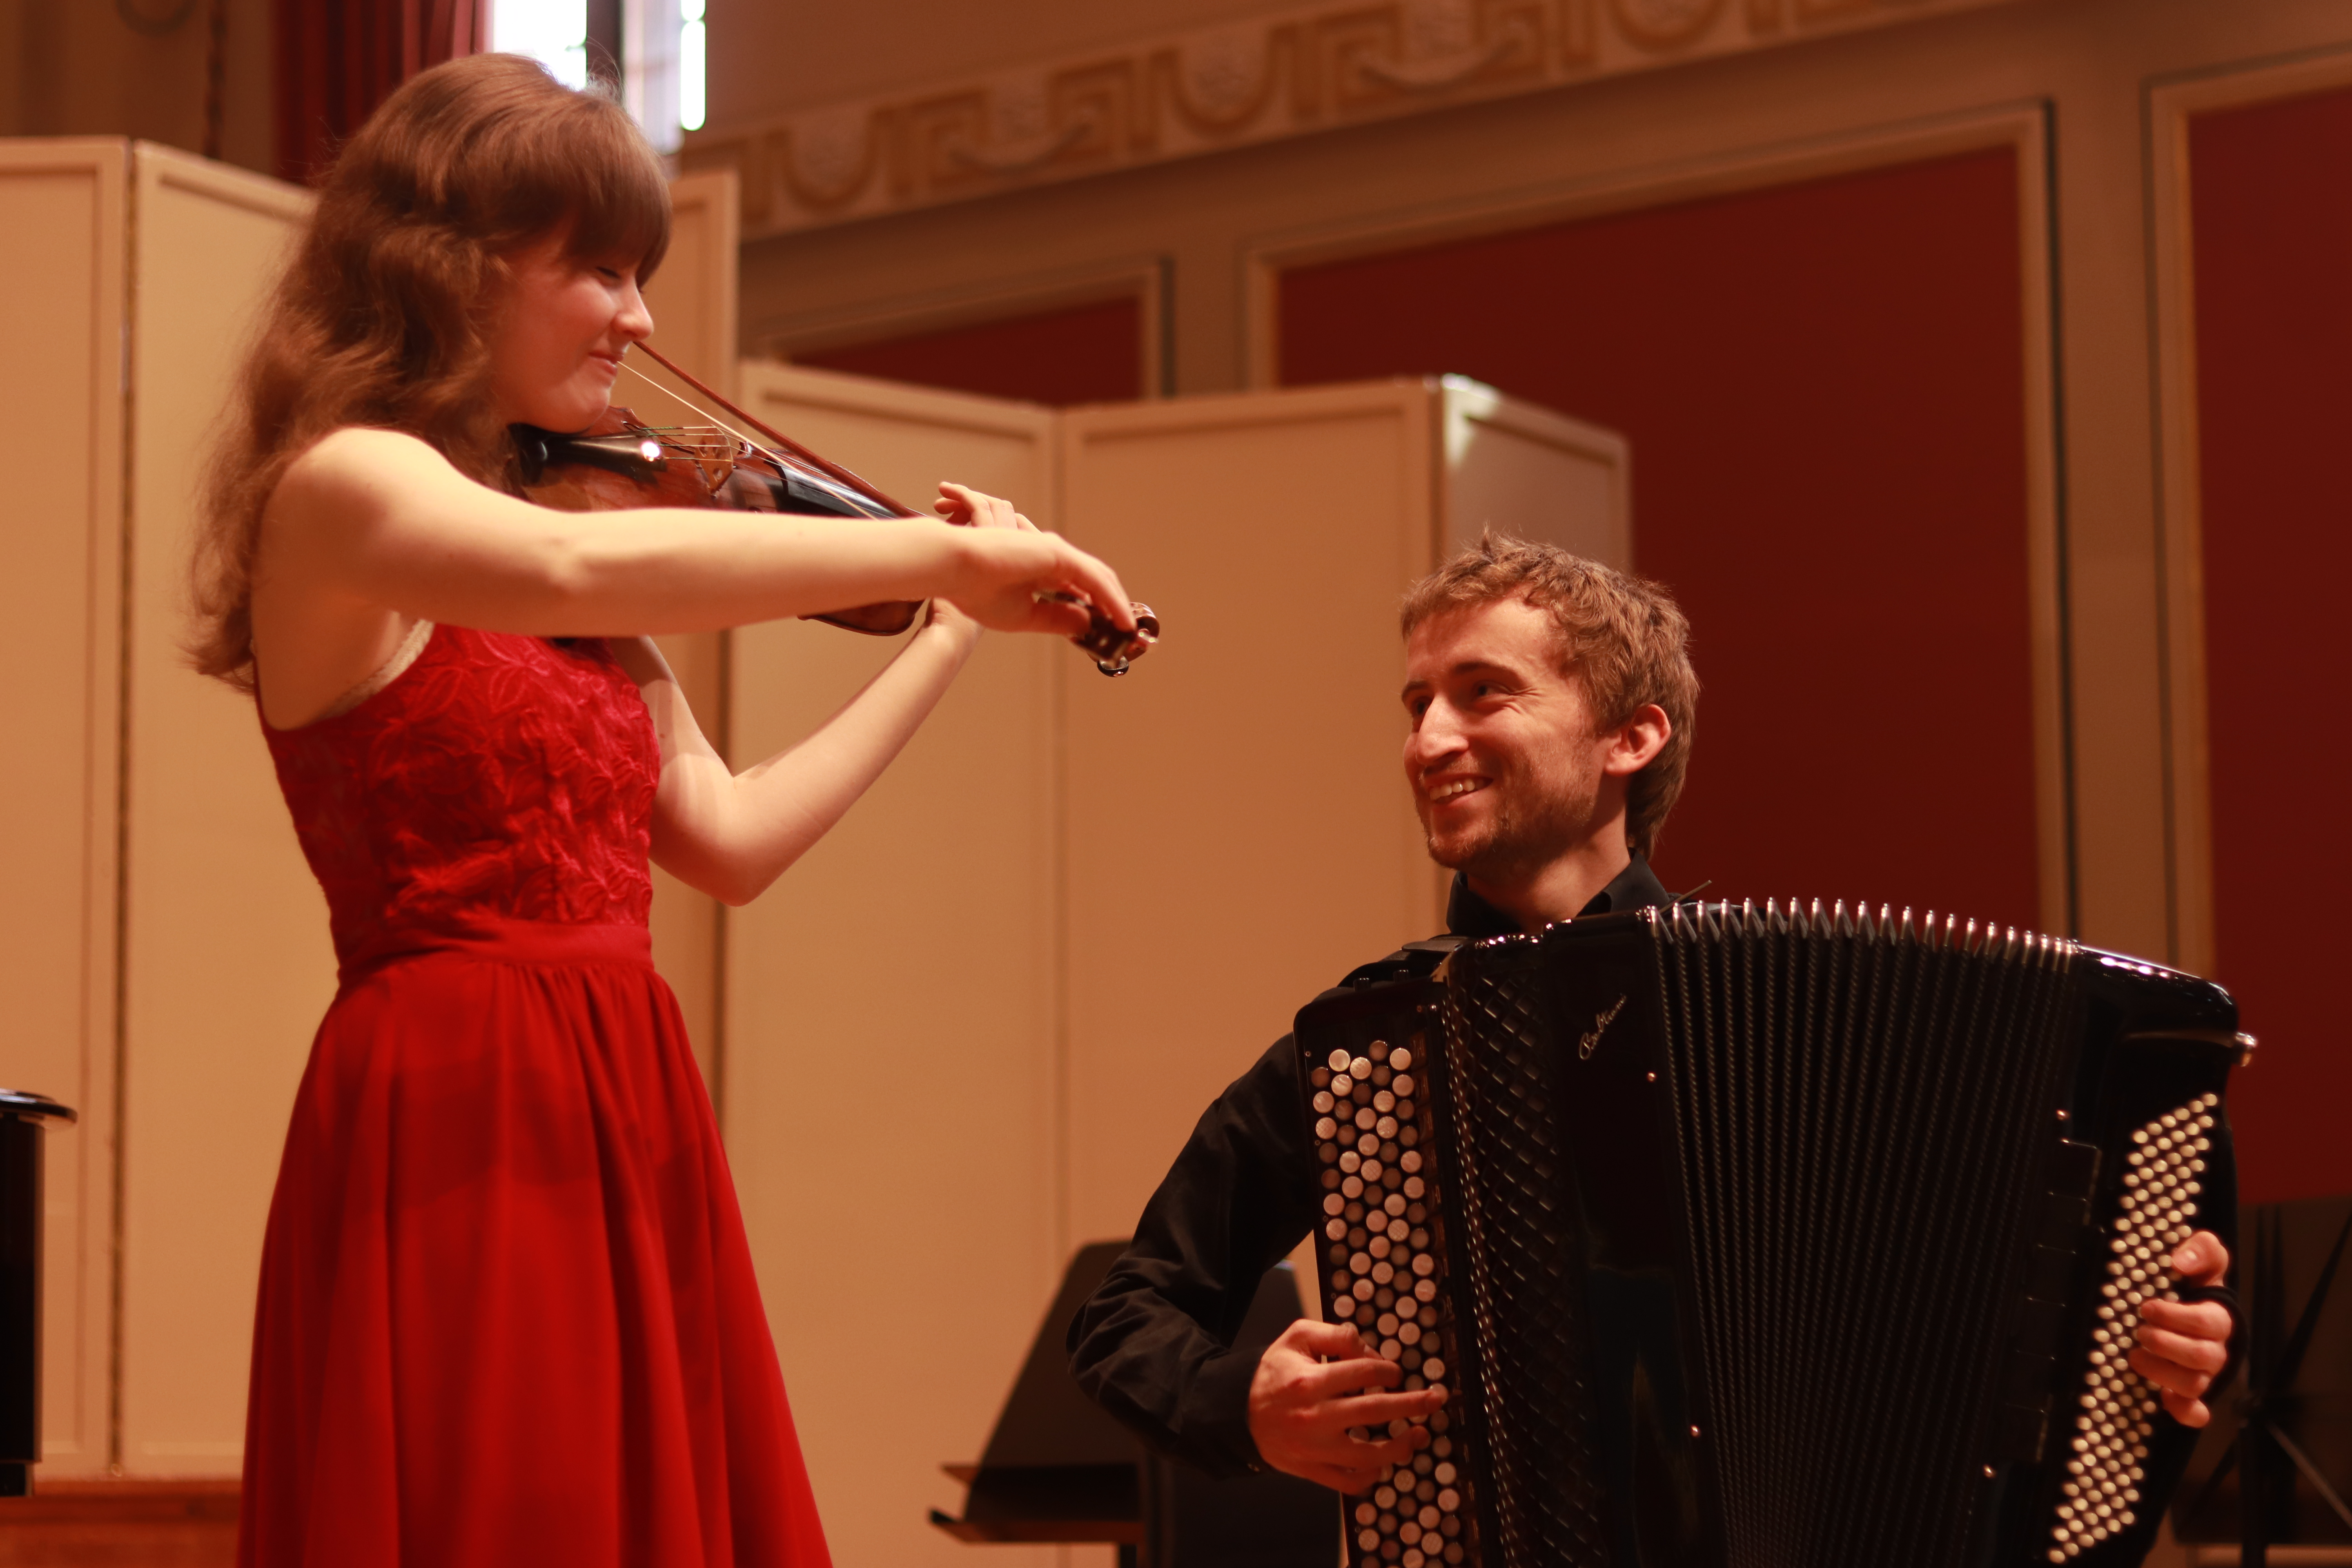 Accordionist Ben De Souza and violinist Chloe Meade who will be performing at the New Room on Friday 11th October 2019